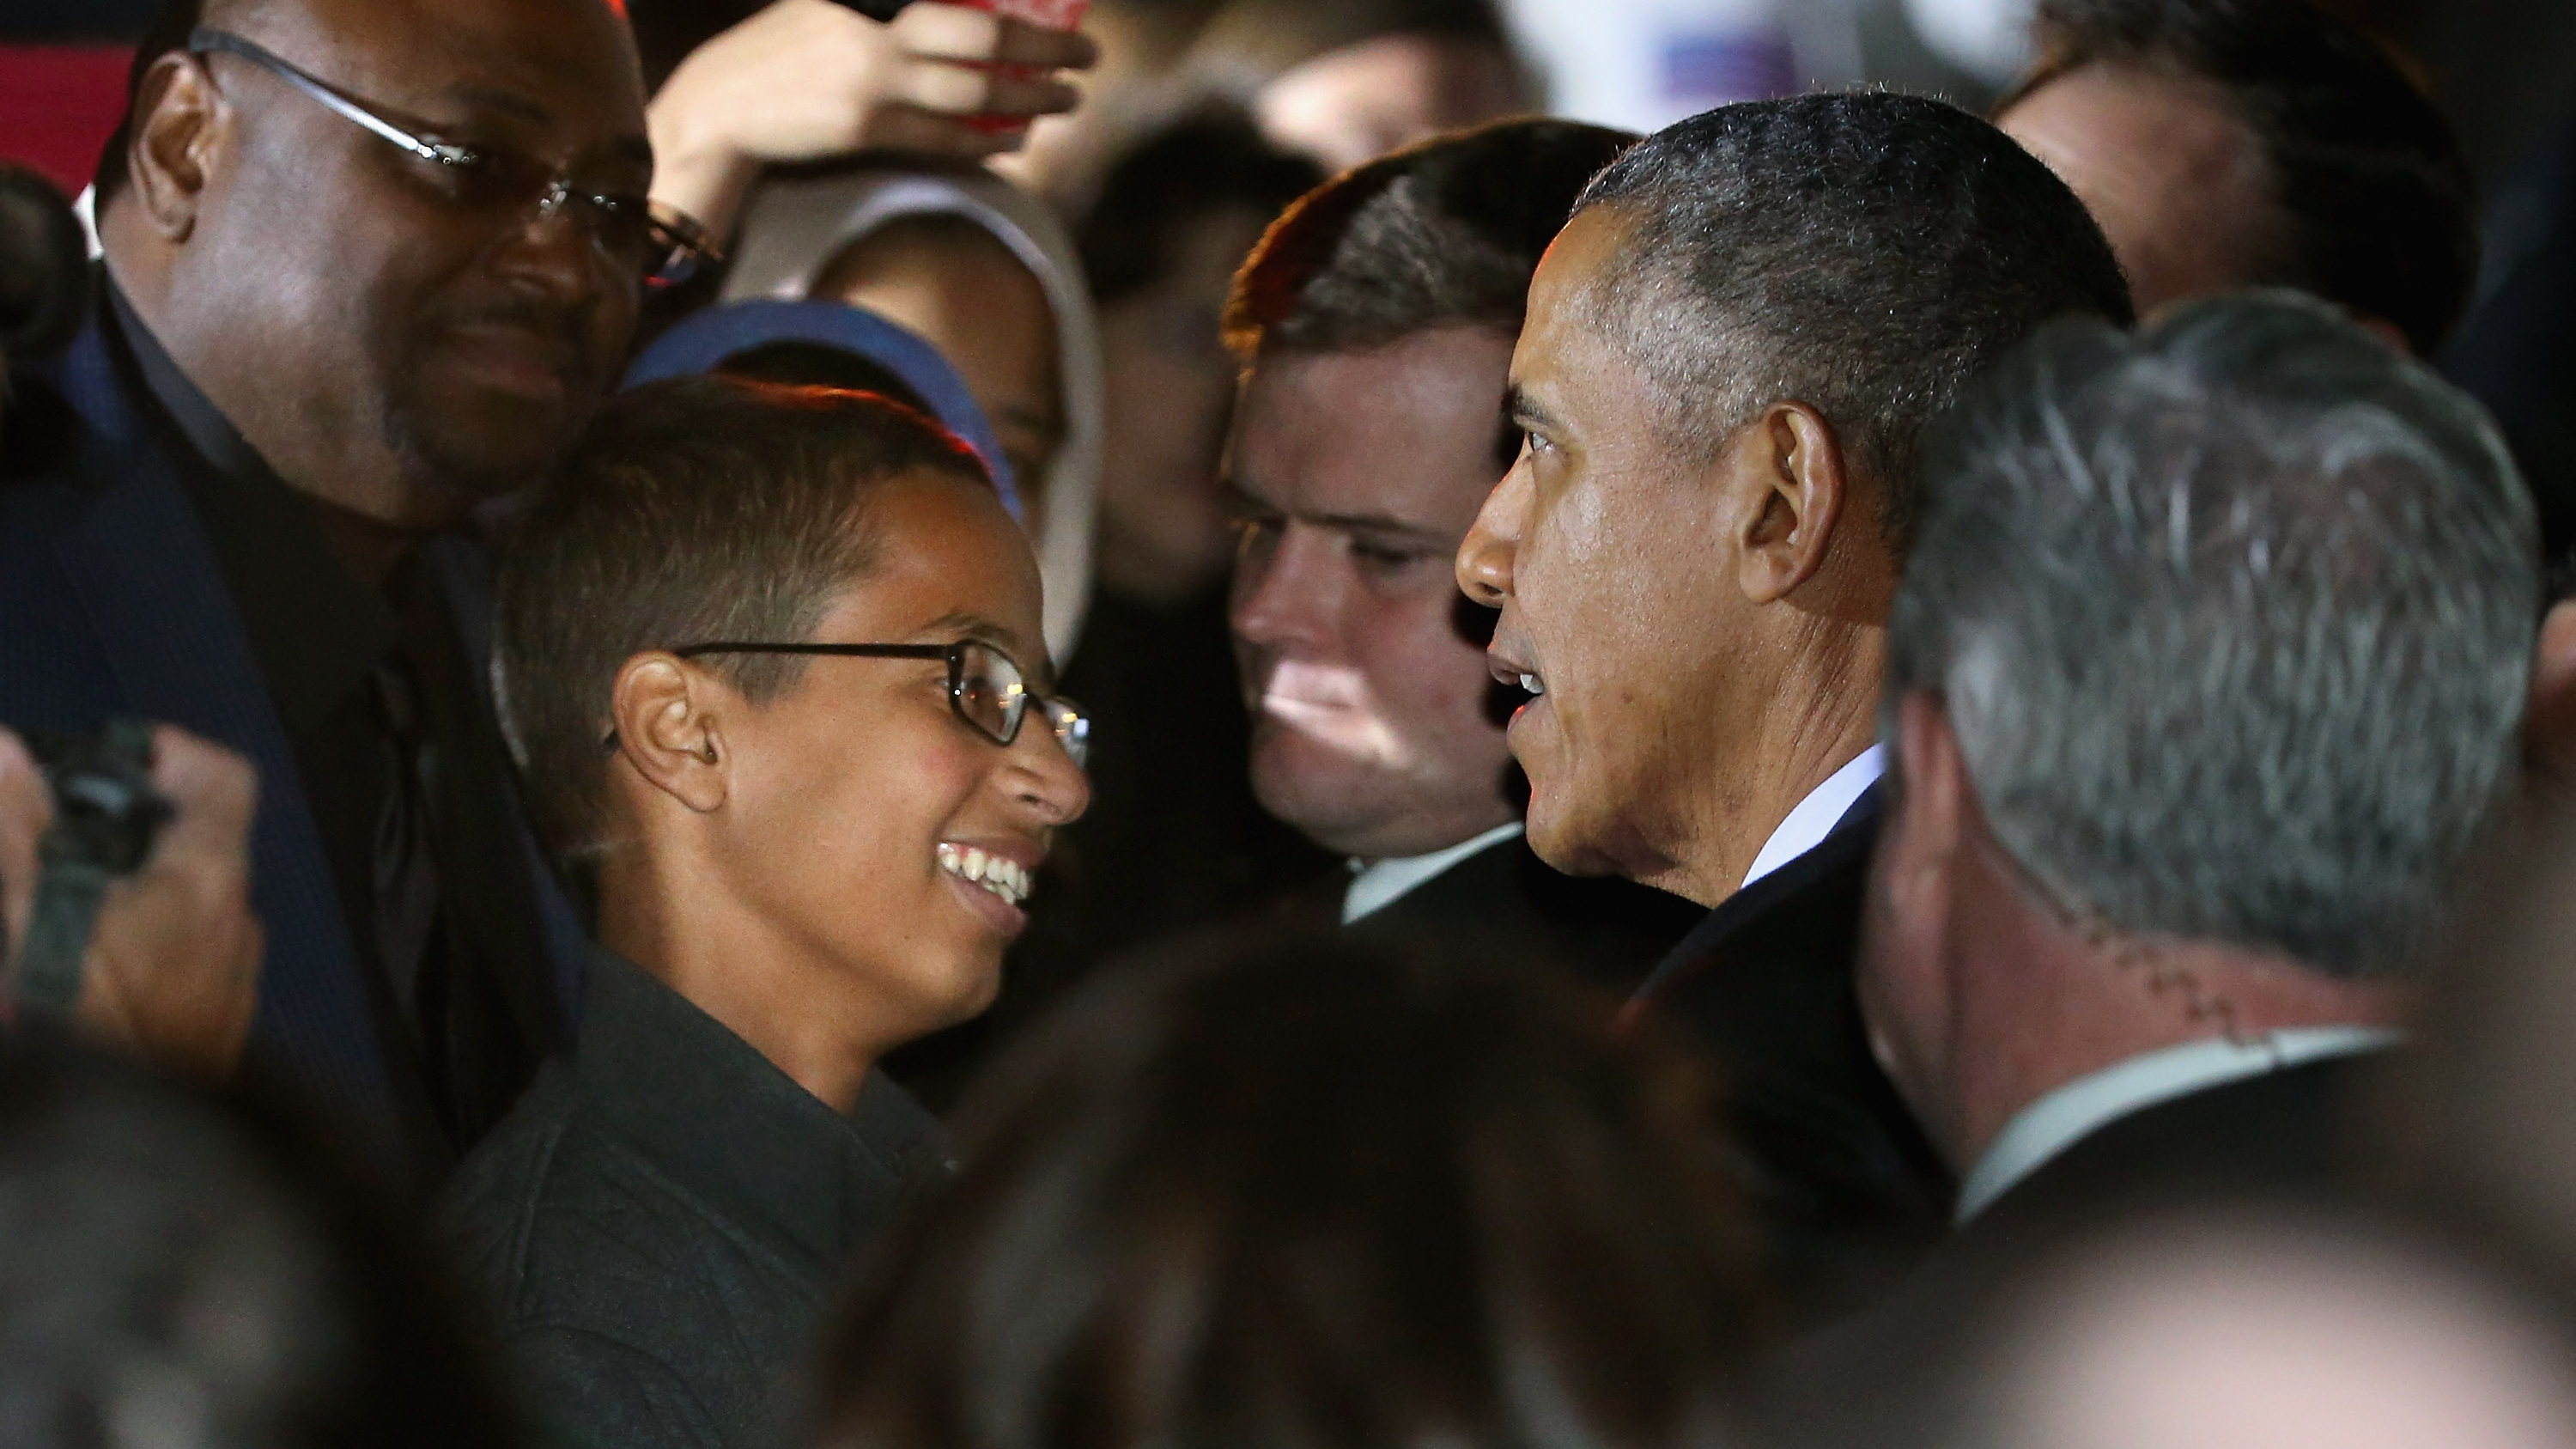 Clock-Making Texas Teen Visits White House For Astronomy Night